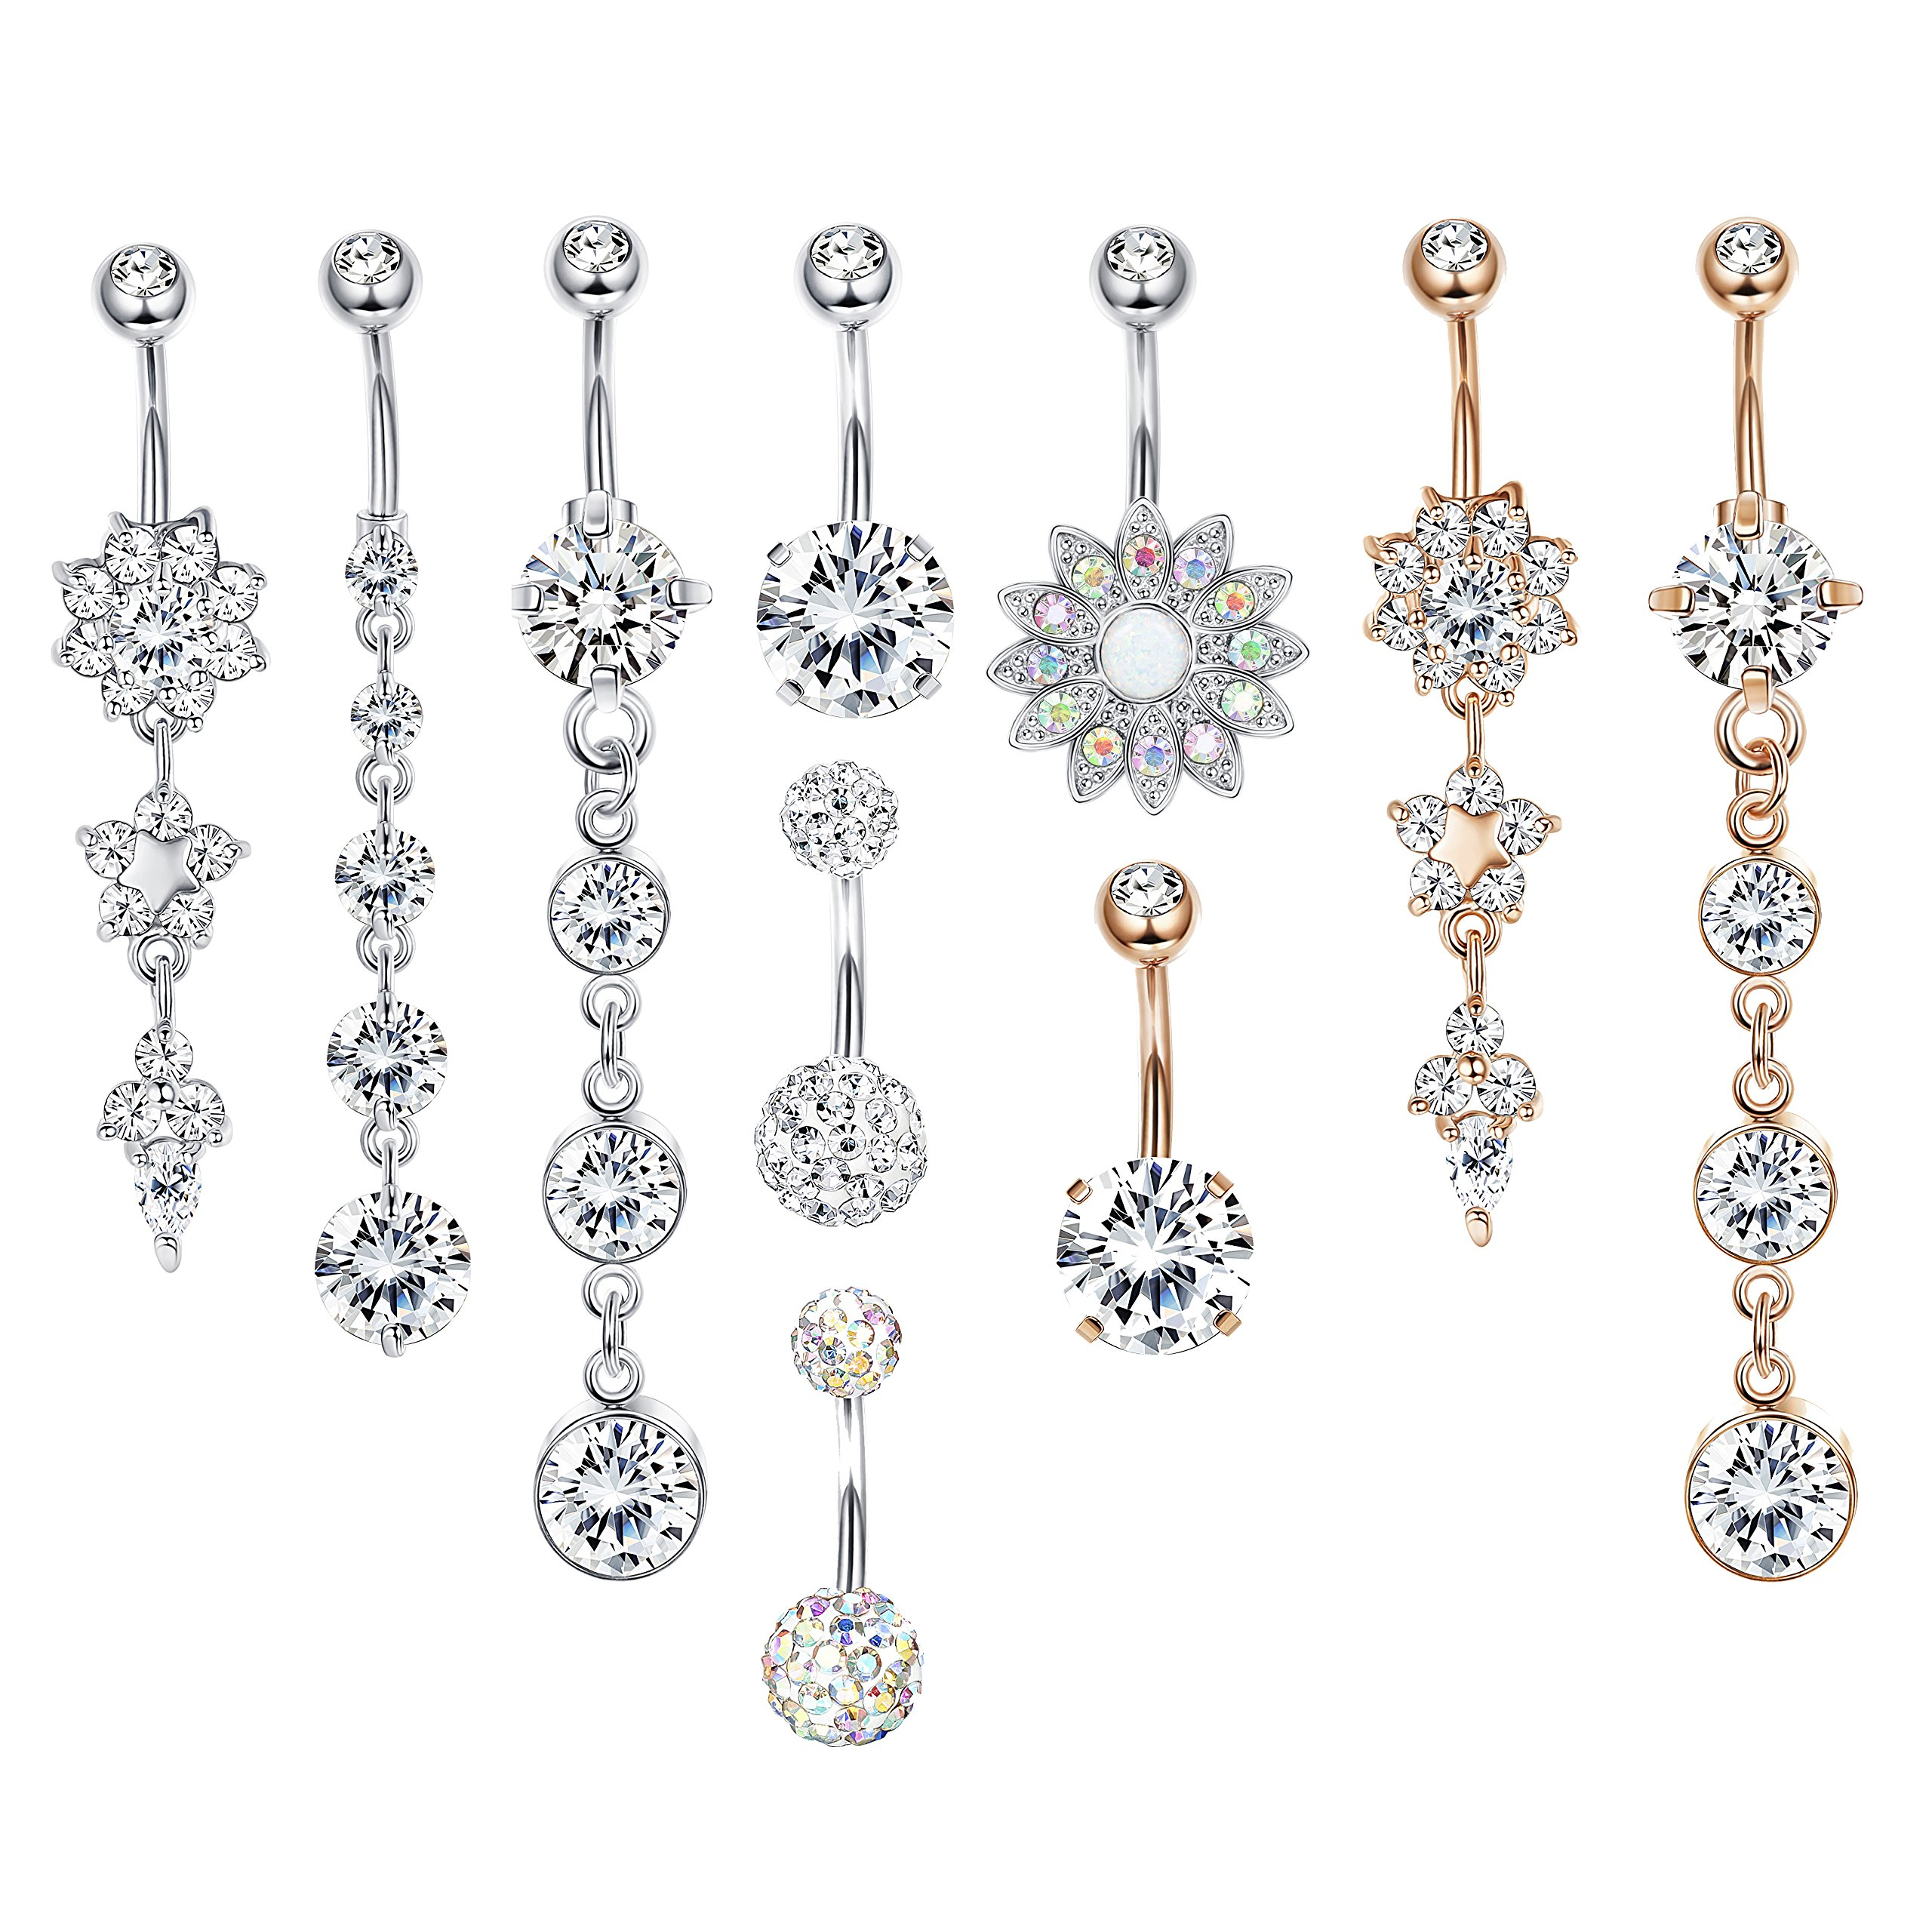 LOYALLOOK 4-6Pcs Dangle Belly Button Rings for Women Girls Navel Rings Curved Barbell CZ Body Piercing 14G (style E:10pcs silver rose gold)